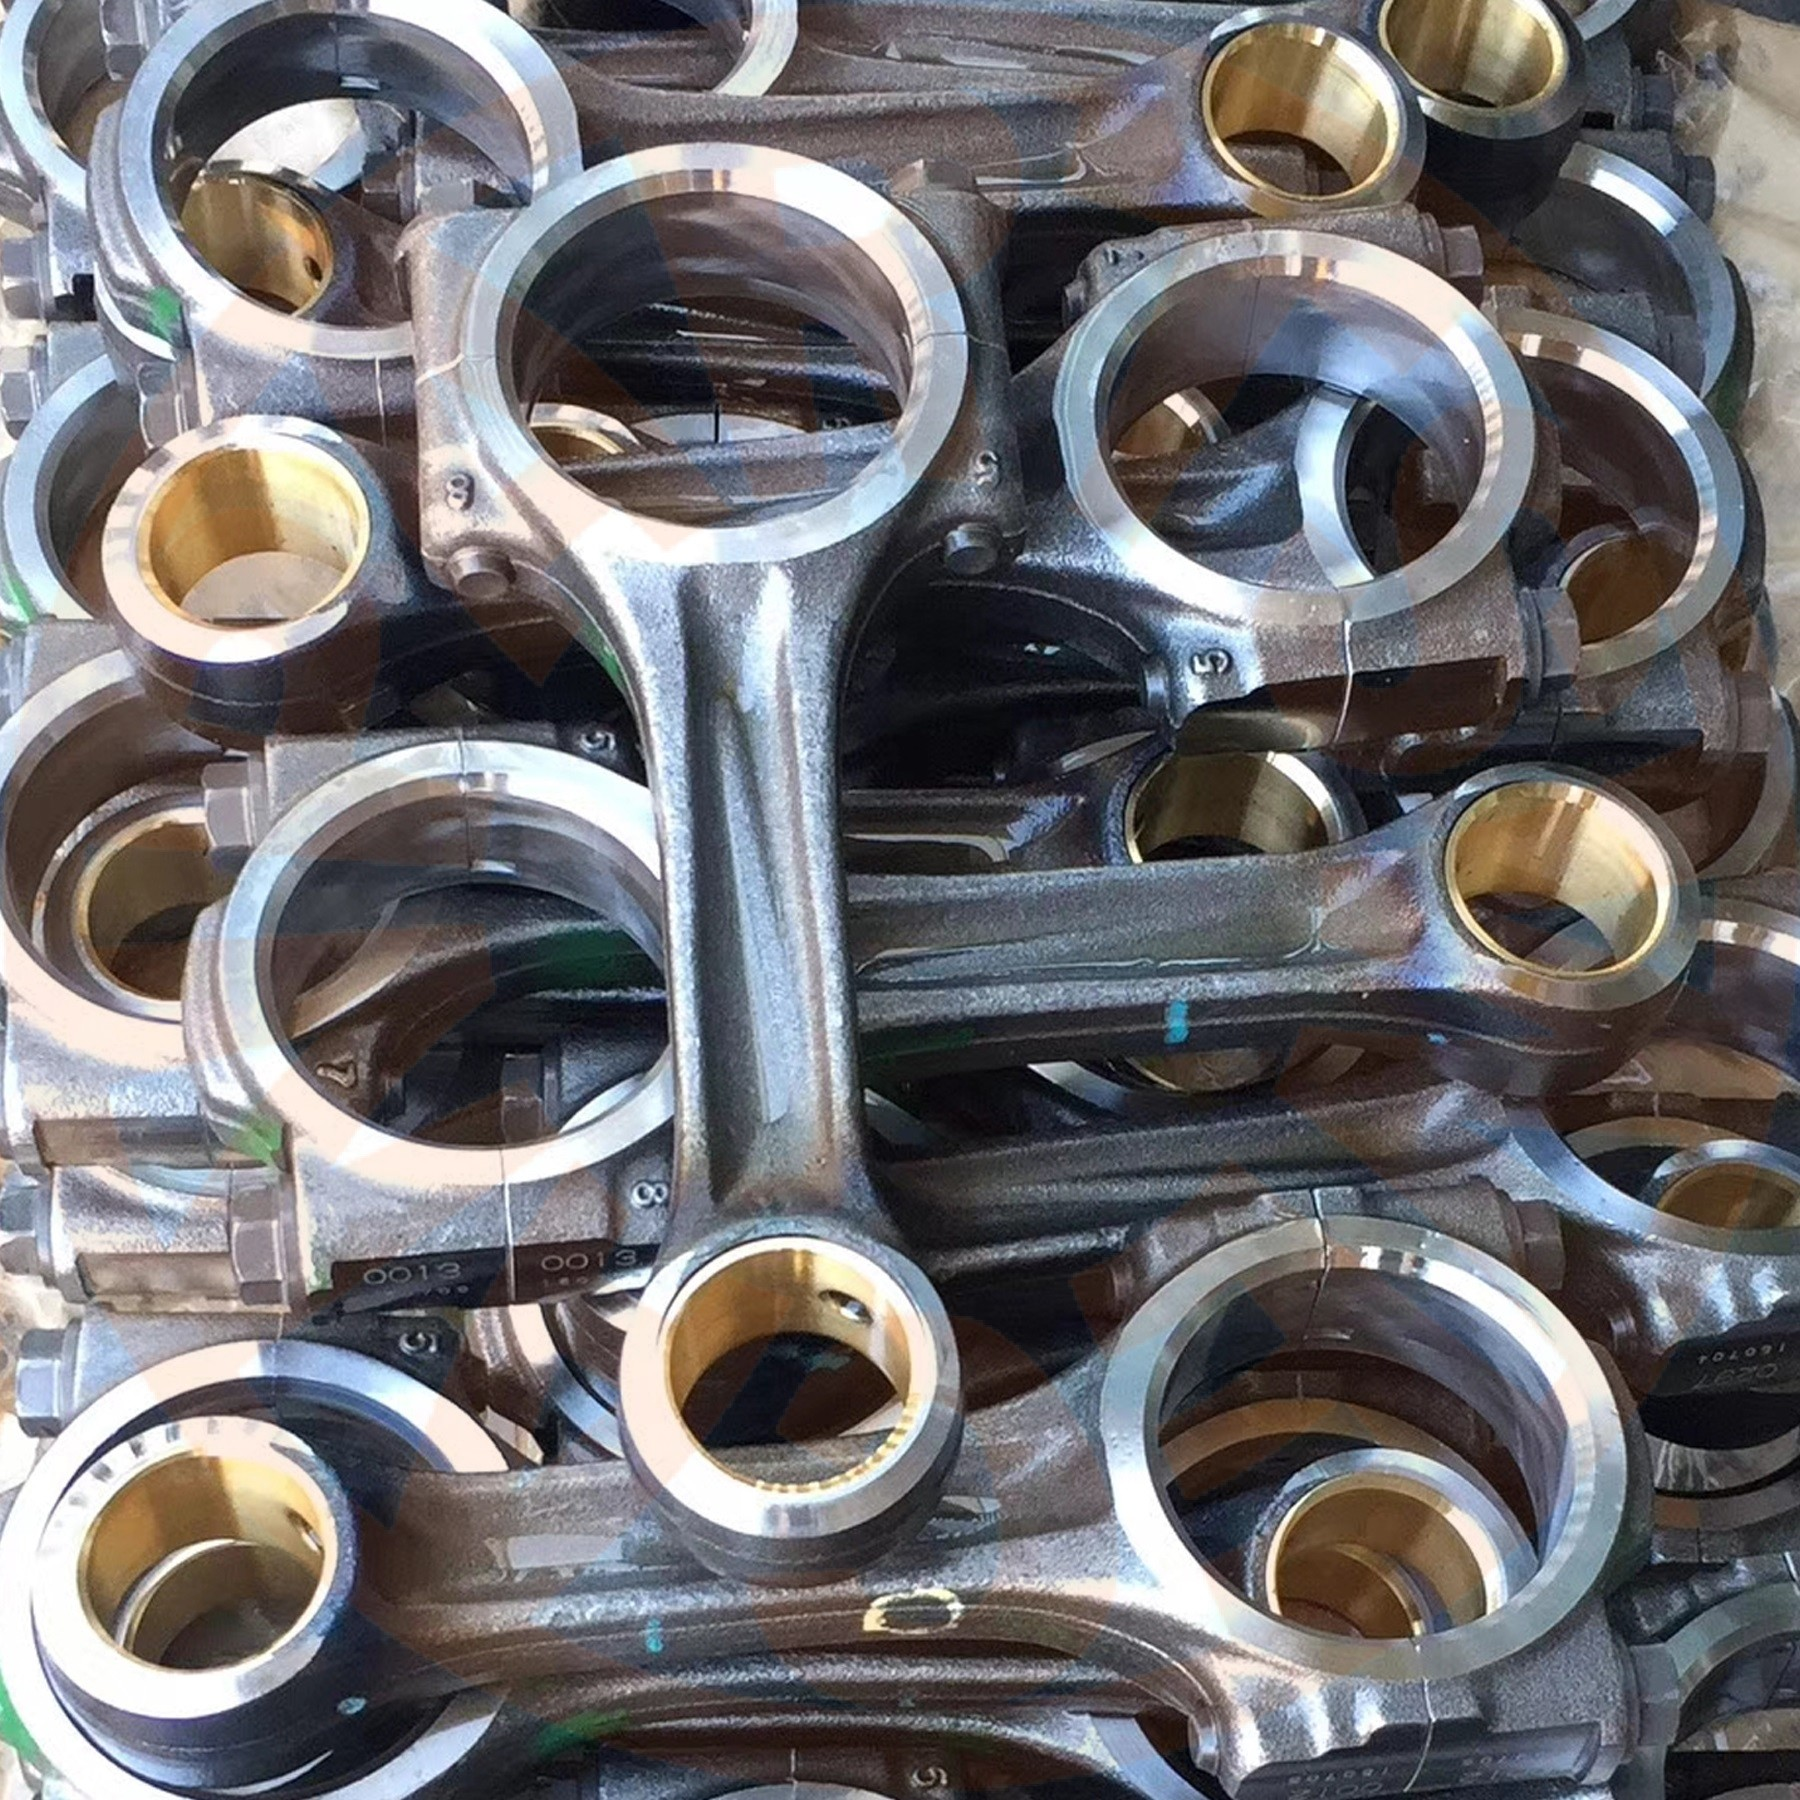 CONNECTING ROD 13260-1790A HINO J08E ENGINE KOBELCO EXCAVATOR AFTERMARKET  PART